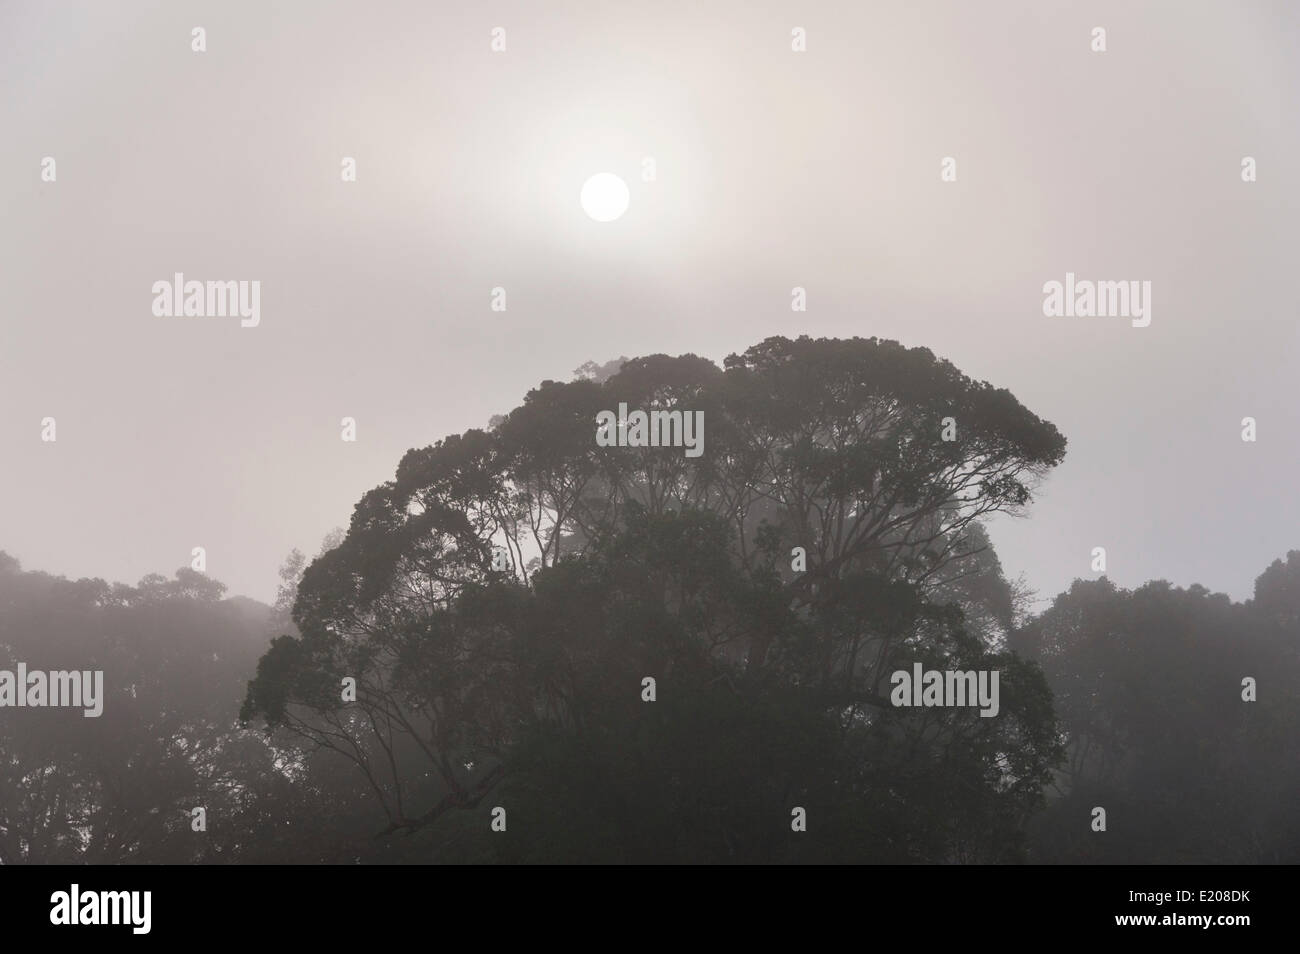 Jungle in the mist, silhouettes of trees, Periyar Dam, Thekkadi, Tamil Nadu, India - Stock Image